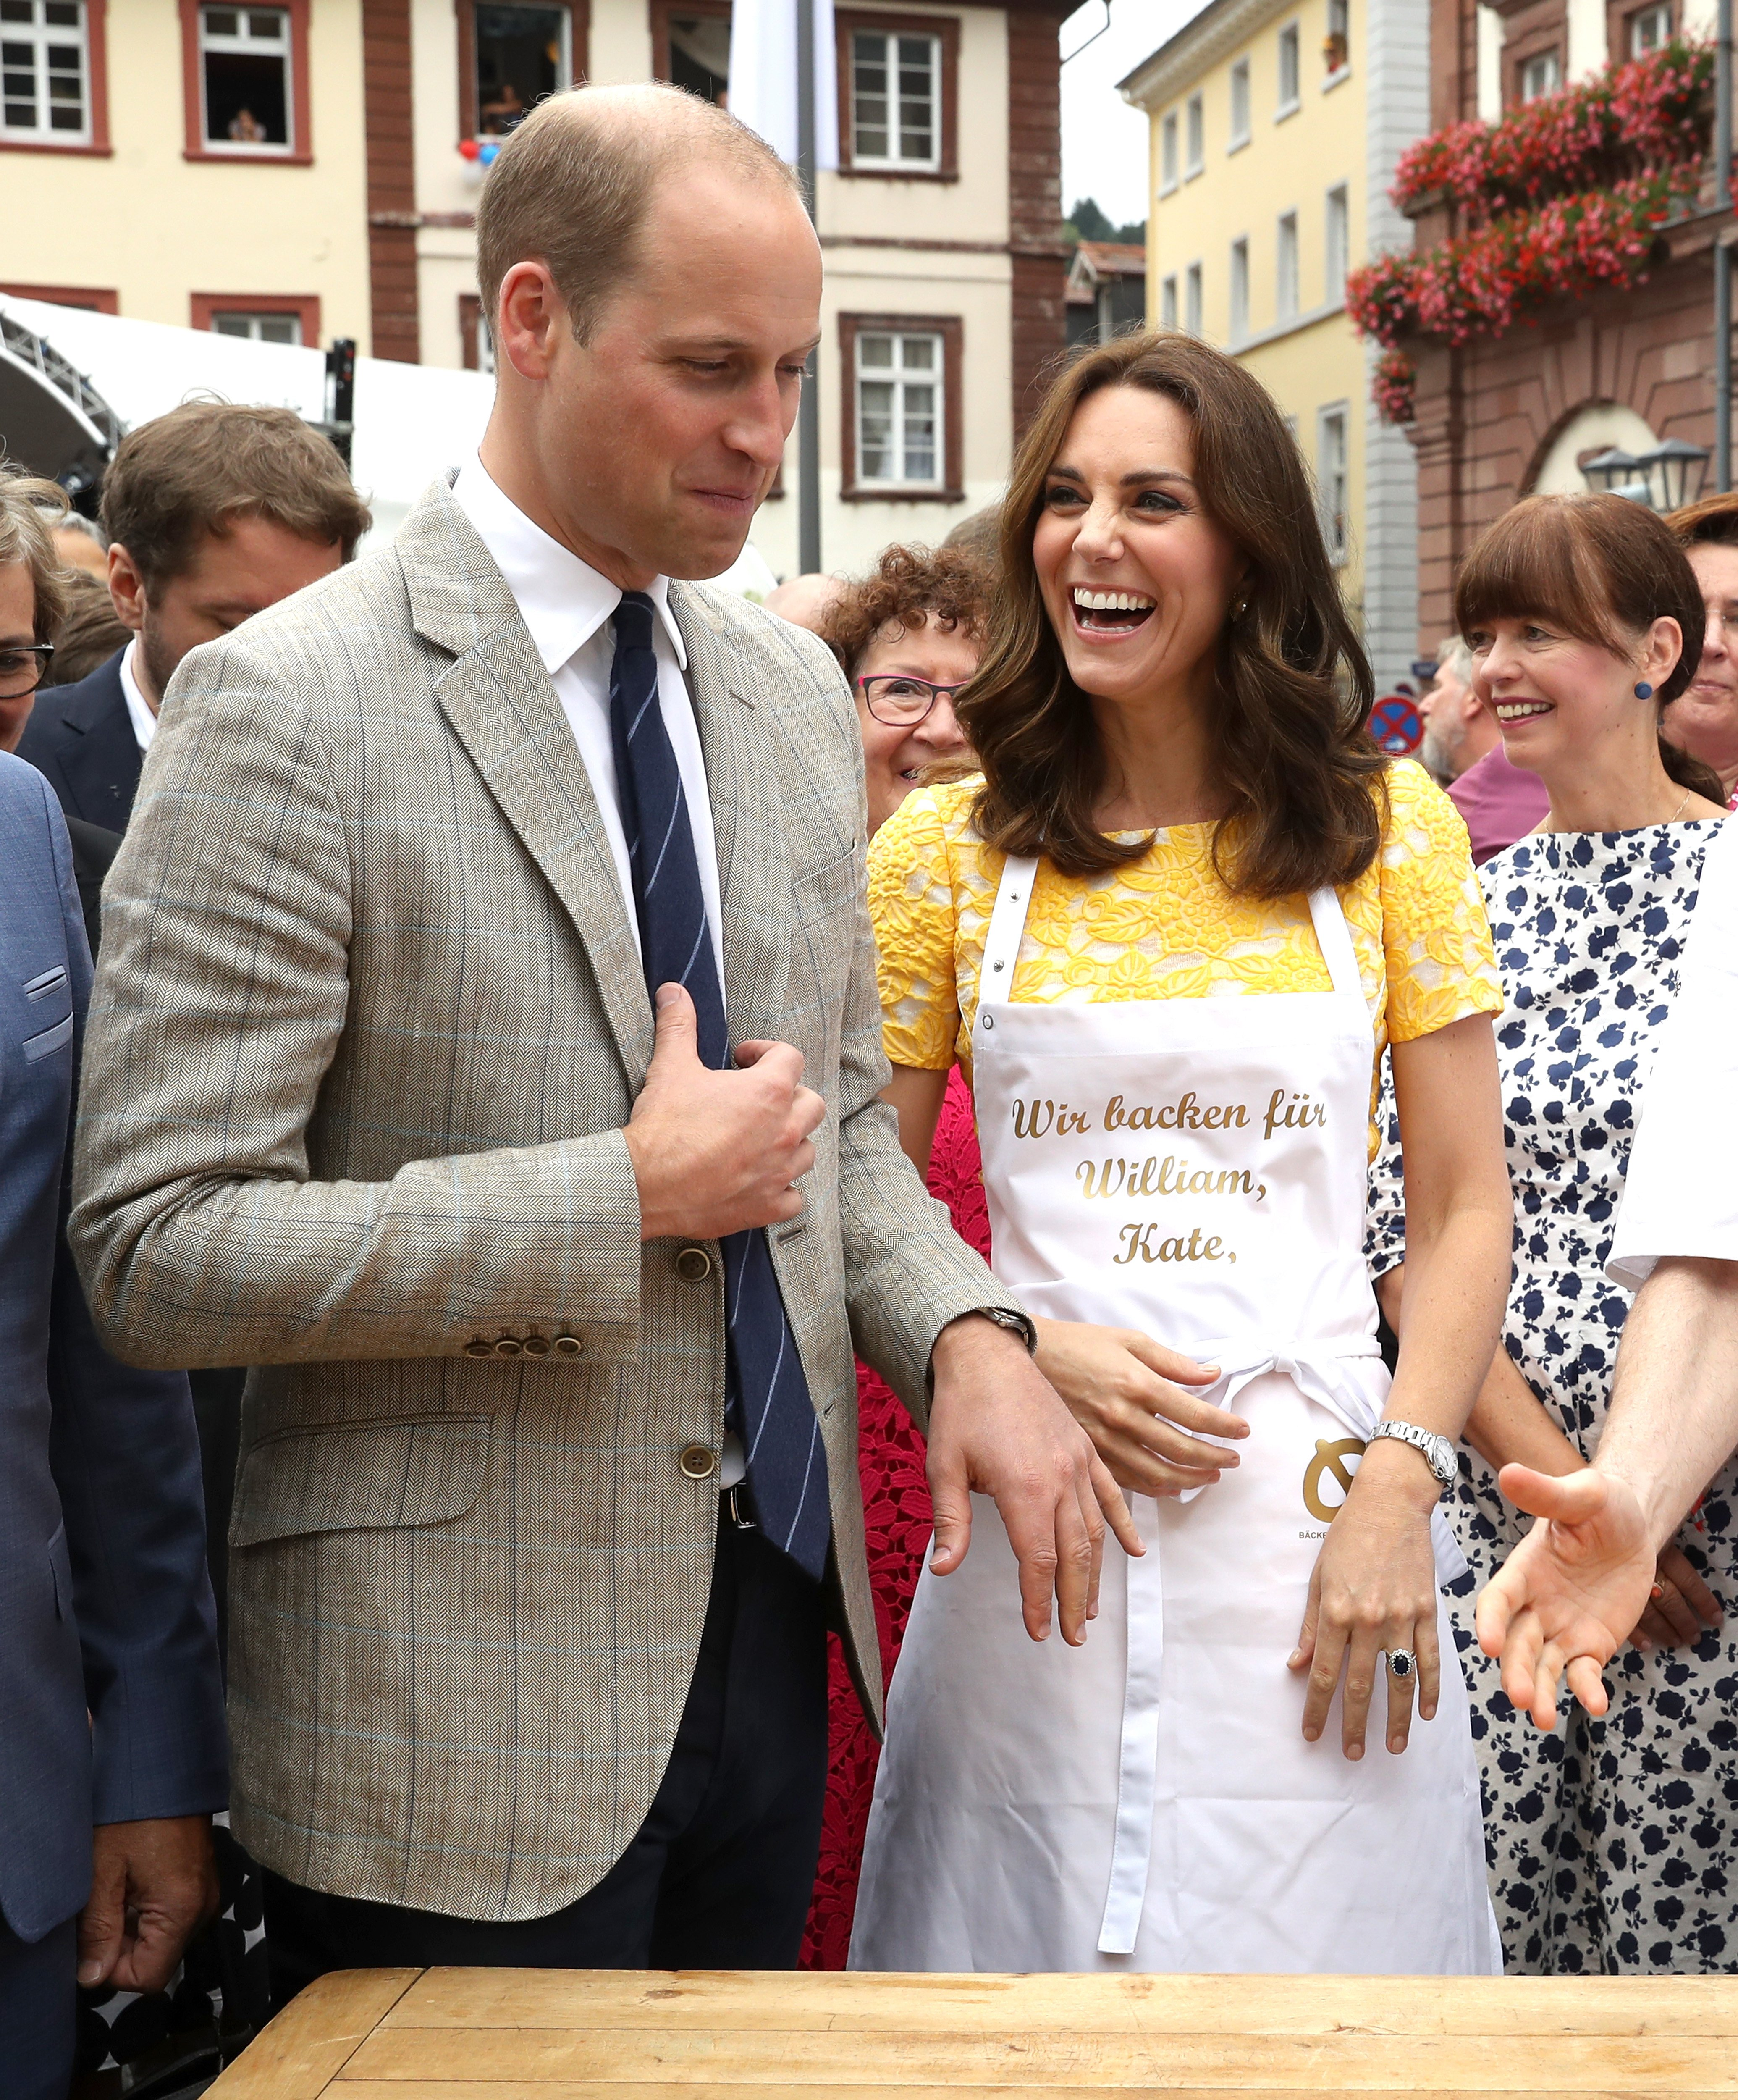 Prince William, Duke of Cambridge and Catherine, Duchess of Cambridge attempt to make pretzels during a tour of a traditional German market in the Central Square on day 2 of their official visit to Germany on July 20, 2017 in Heidelberg, Germany